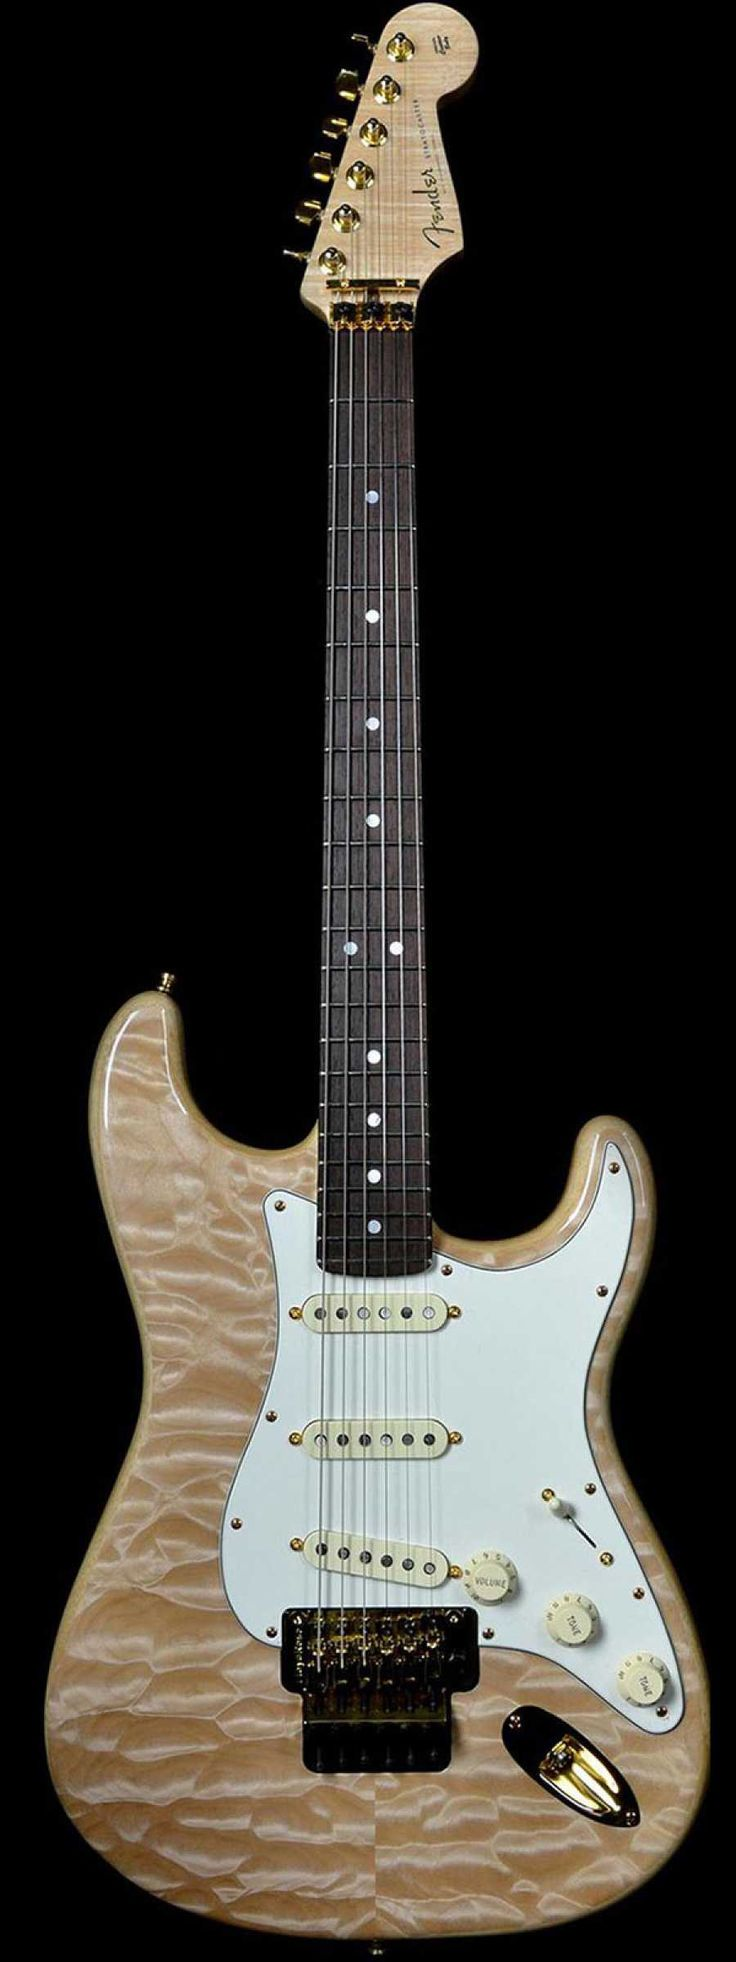 Fender Yuriy Shishkov Master Built Stratocaster Natural Quilt - Wild West Guitars